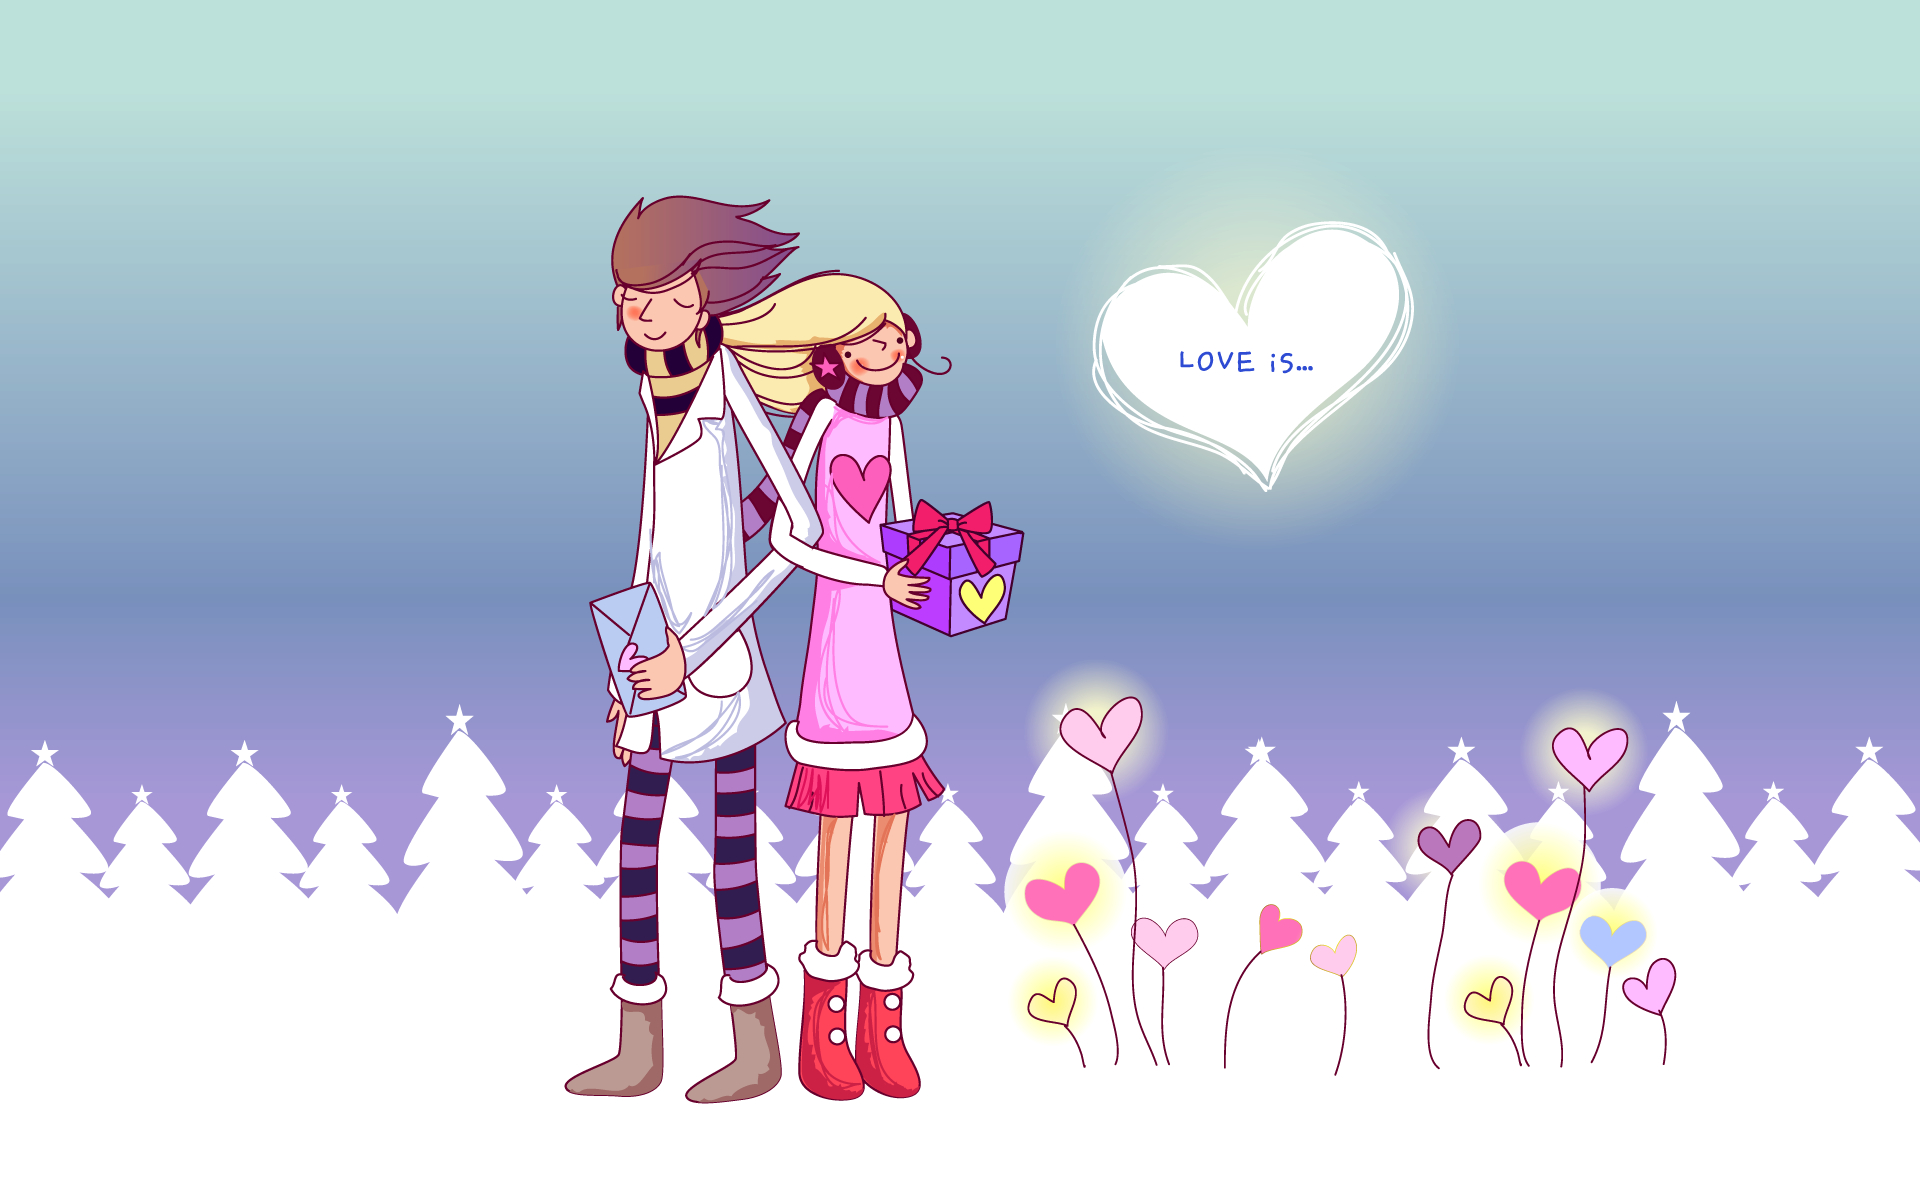 Love Wallpaper For cartoon : Love cartoon Image - Wallpaper, High Definition, High Quality, Widescreen